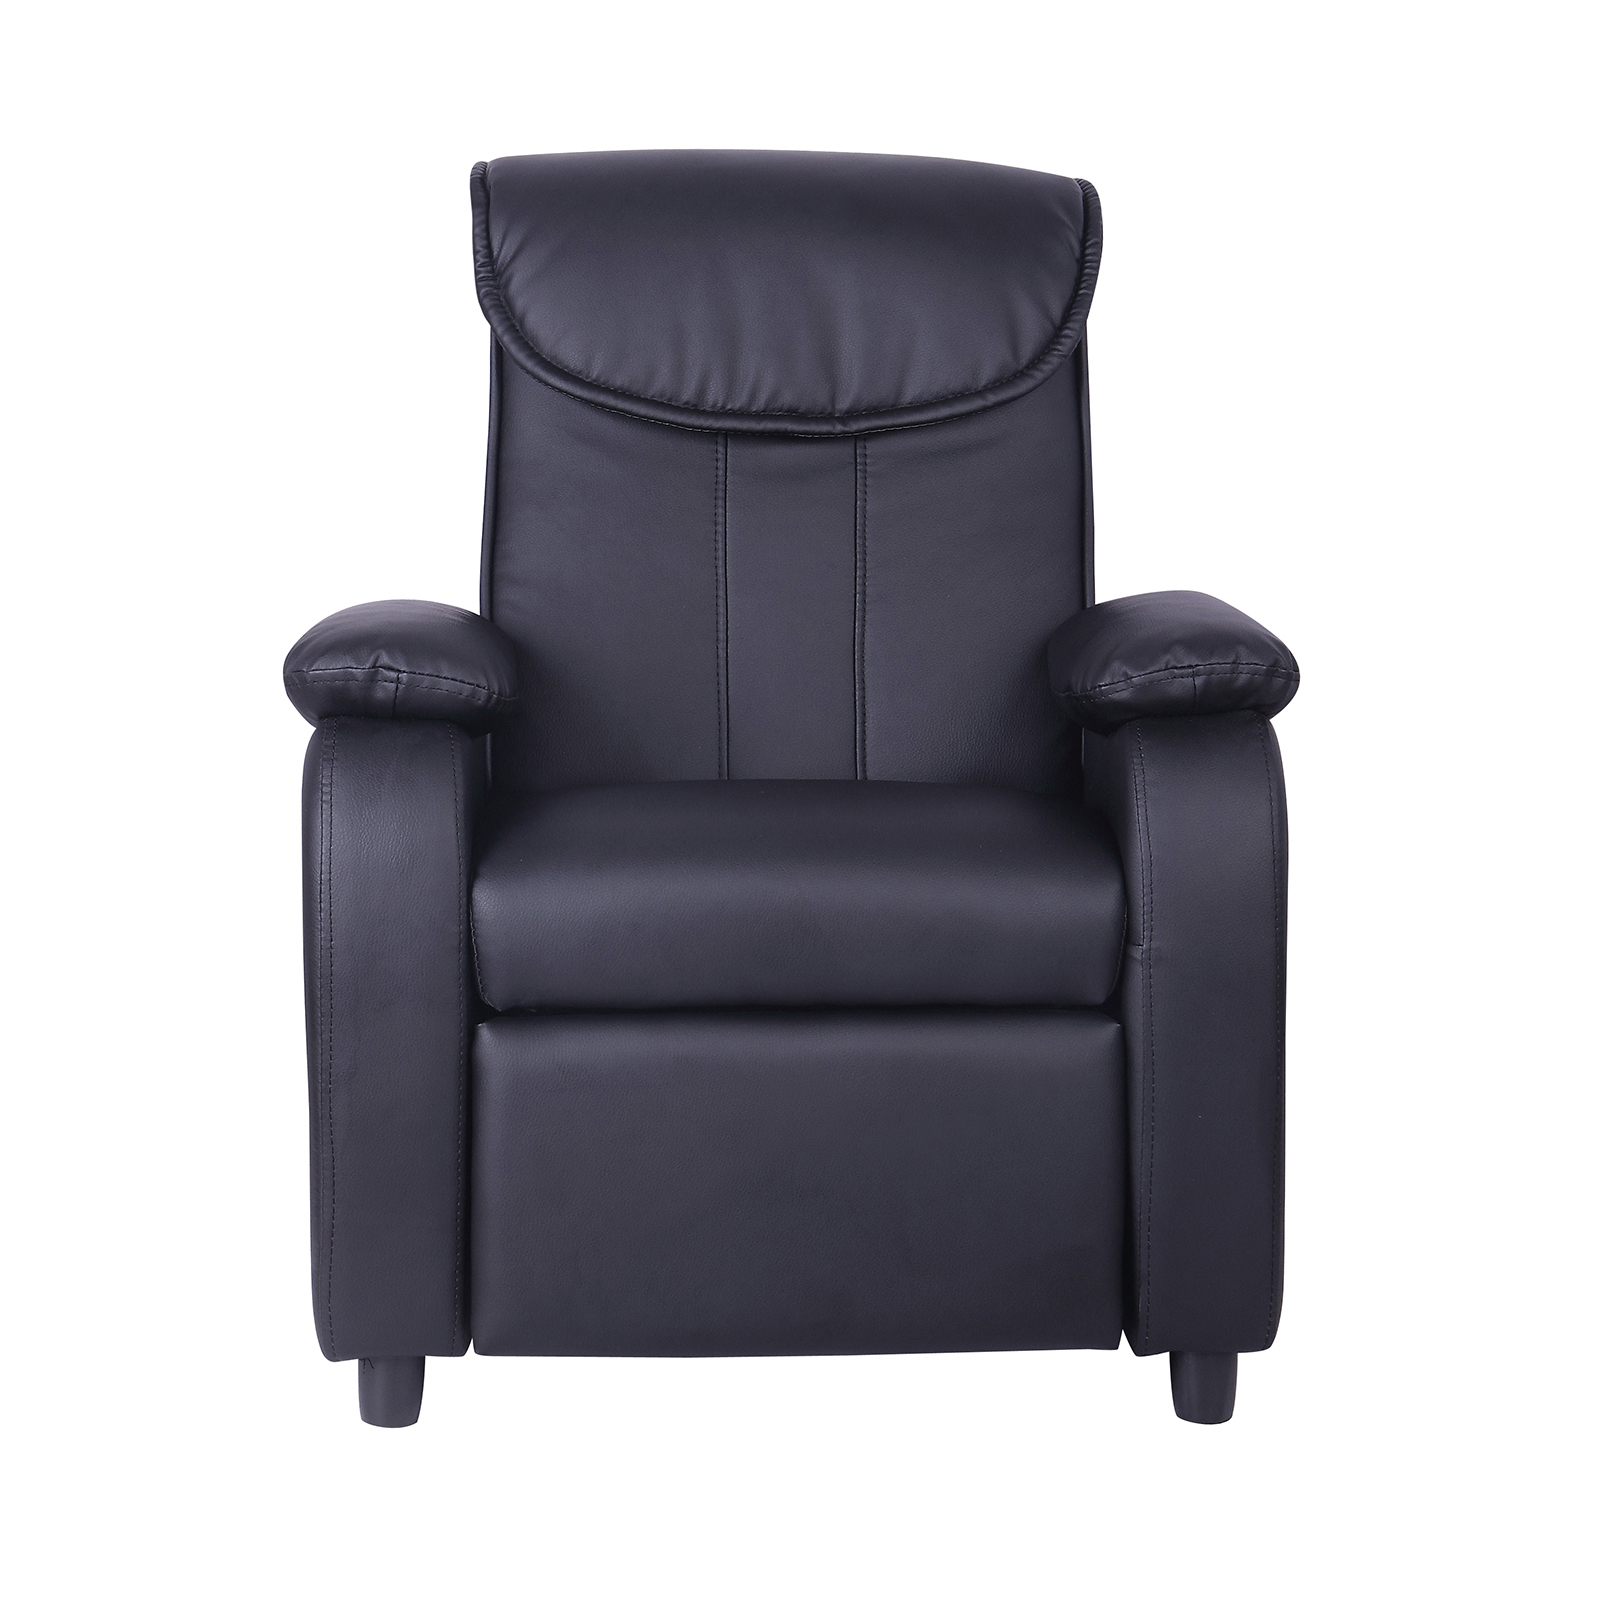 Faux Leather Chair Kids Childrens Faux Leather Padded Reclining Recliner